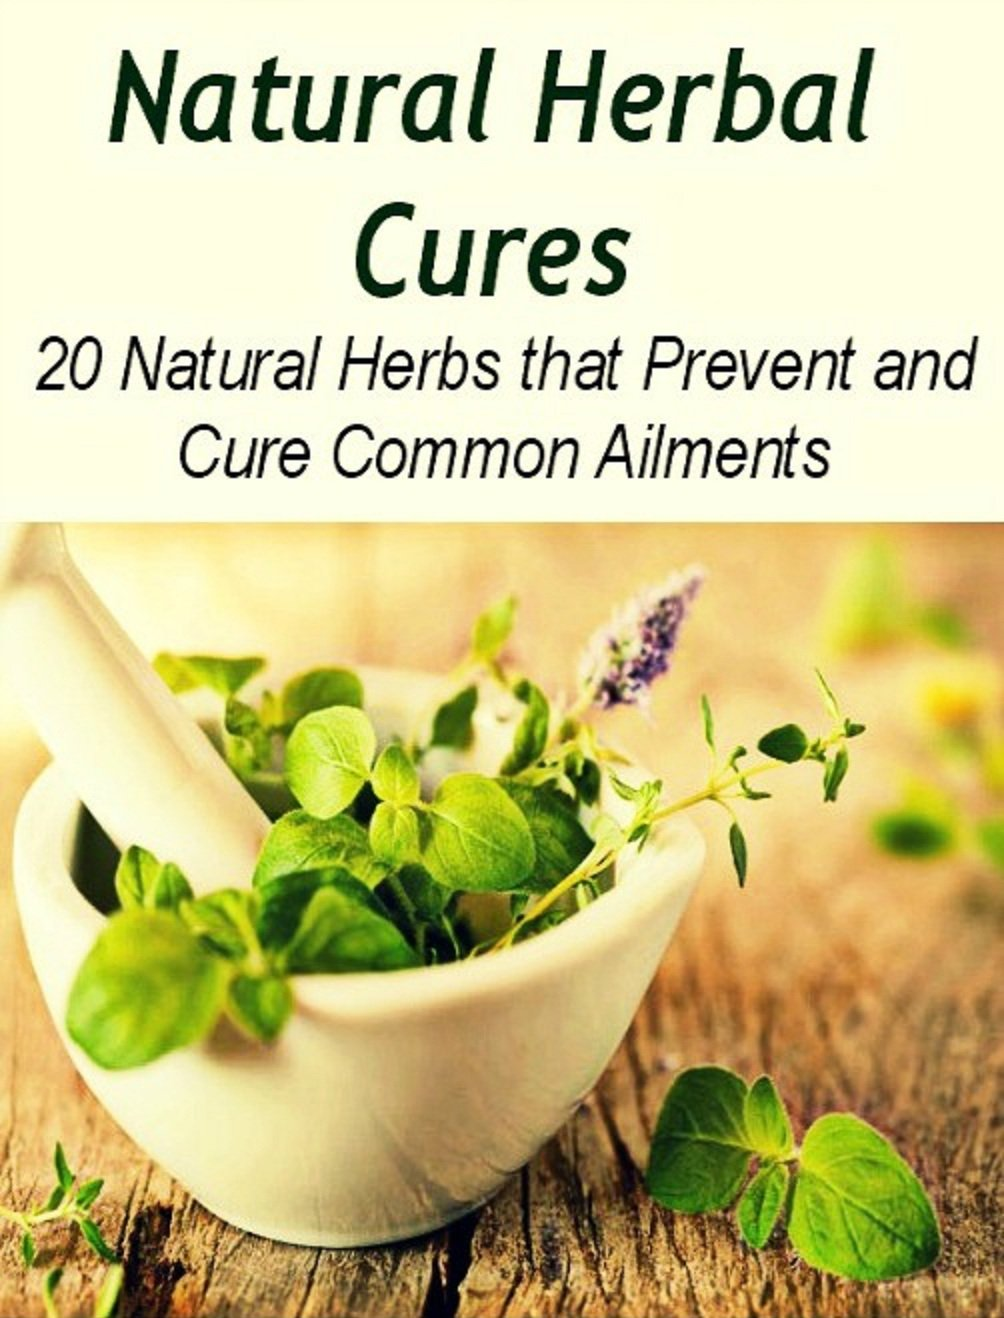 http://www.amazon.com/Natural-Herbal-Cures-Ailments-remedies-ebook/dp/B00JNW2FKE/ref=as_sl_pc_ss_til?tag=lettfromahome-20&linkCode=w01&linkId=ETD7ZBWQA3KKYEDX&creativeASIN=B00JNW2FKE